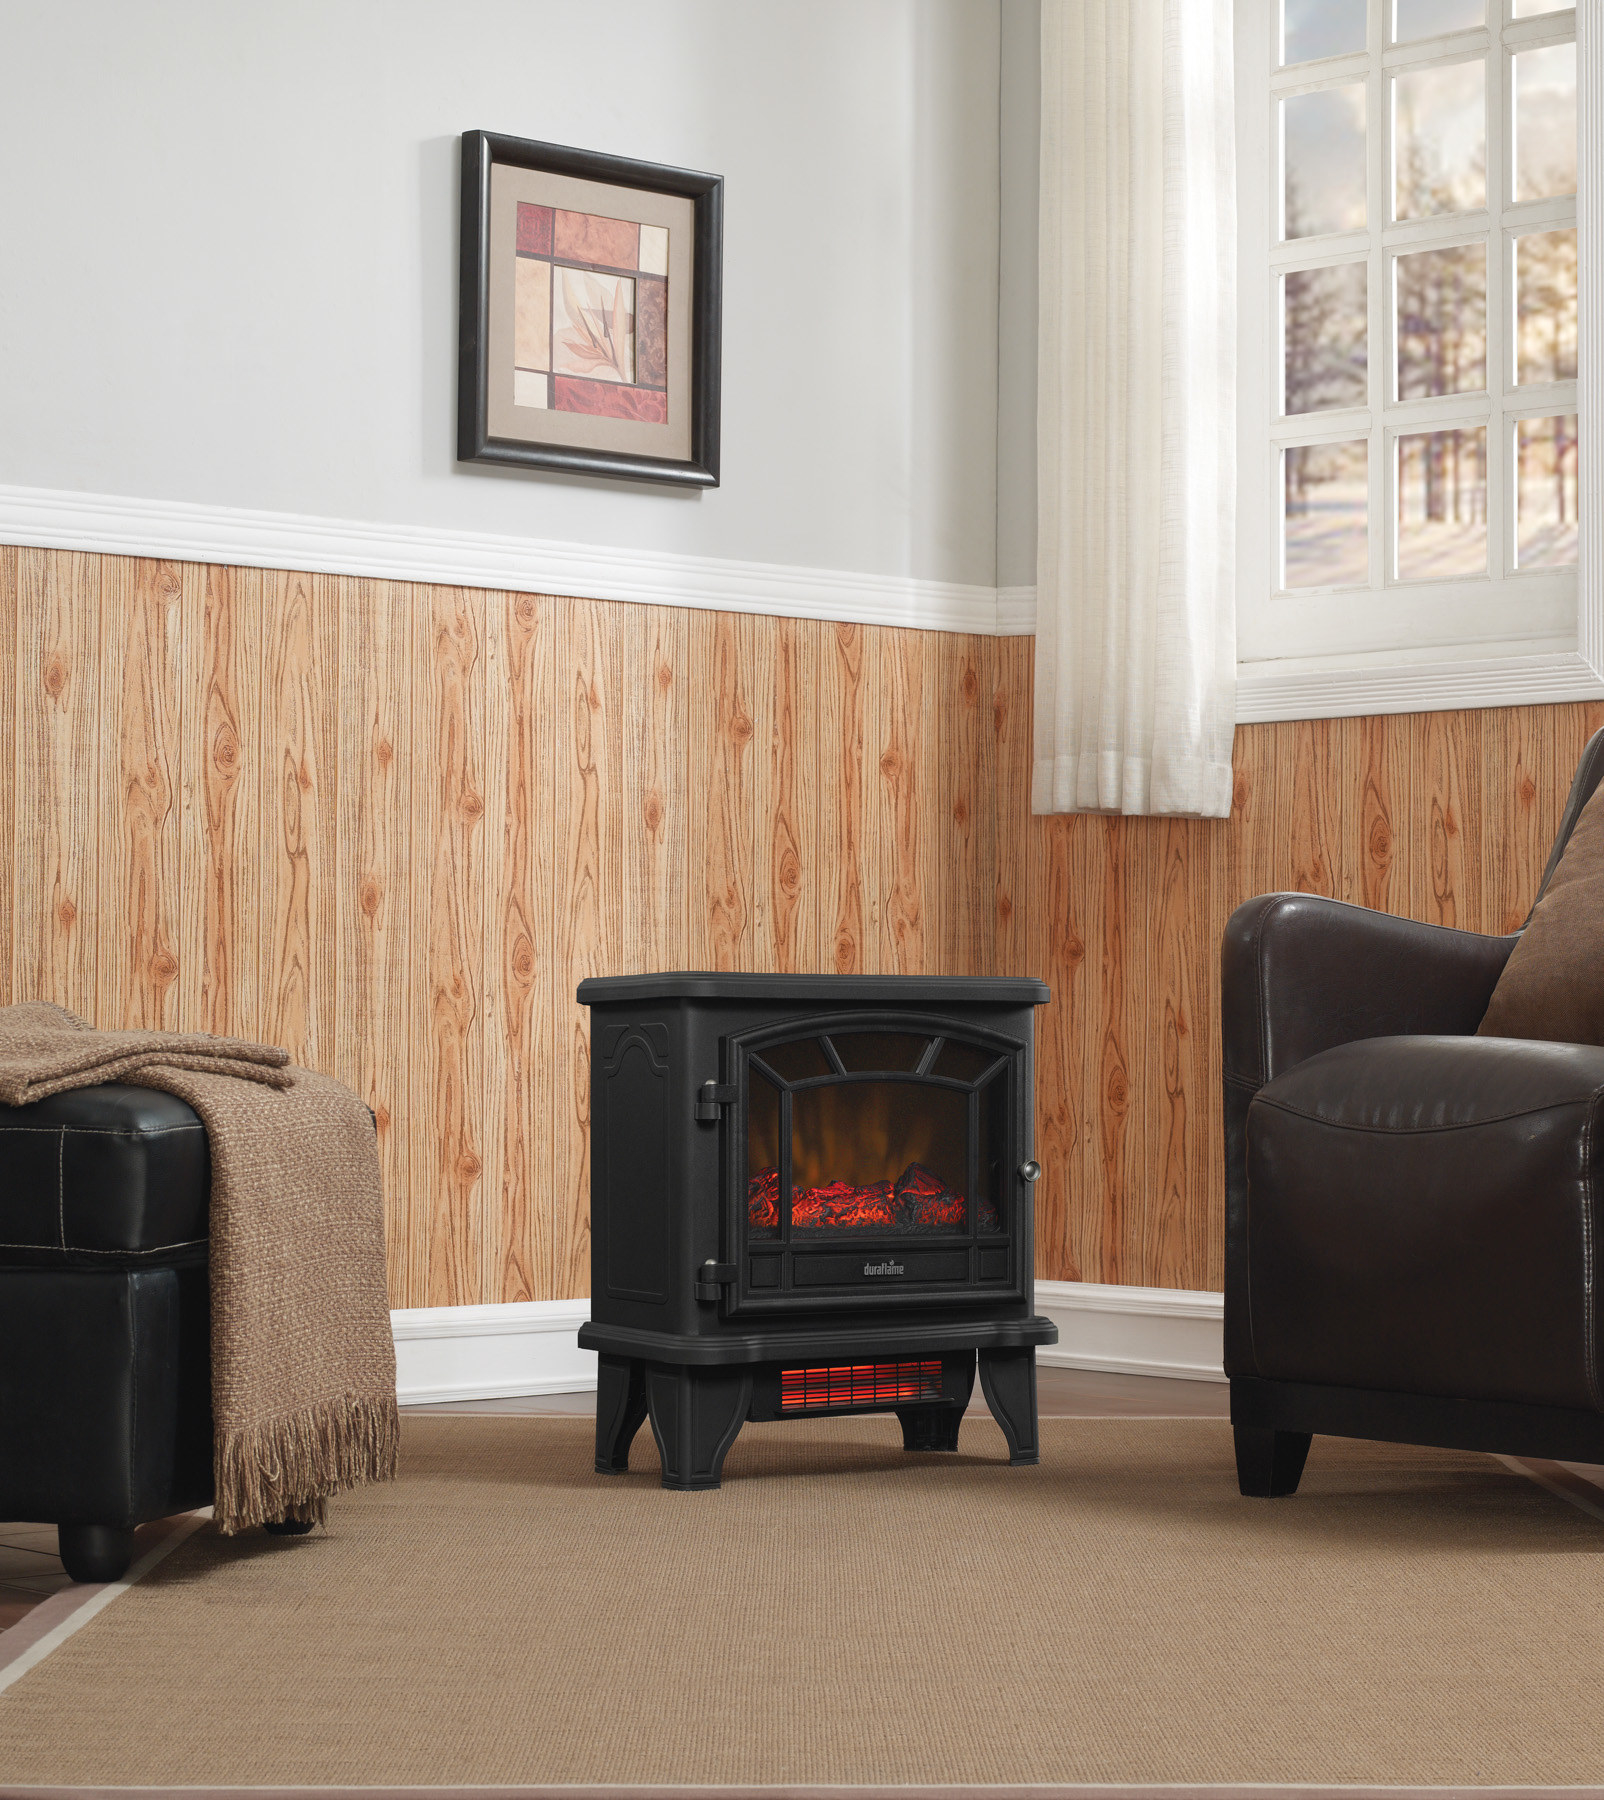 black duraflame space heater in a living room